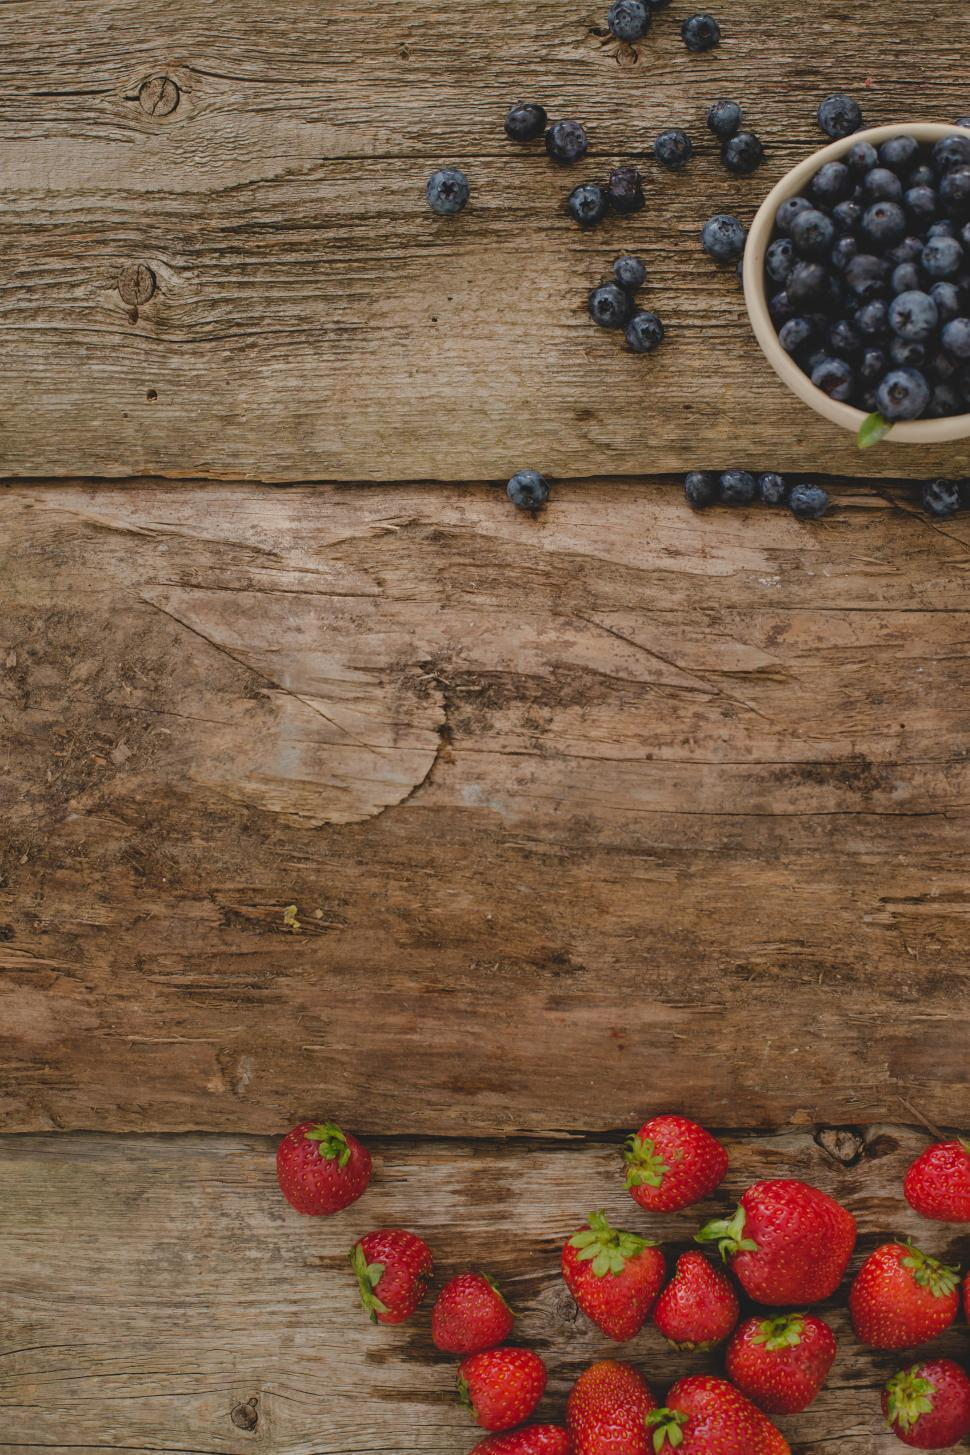 Download Free Stock HD Photo of Berries on the wooden table with copyspace Online